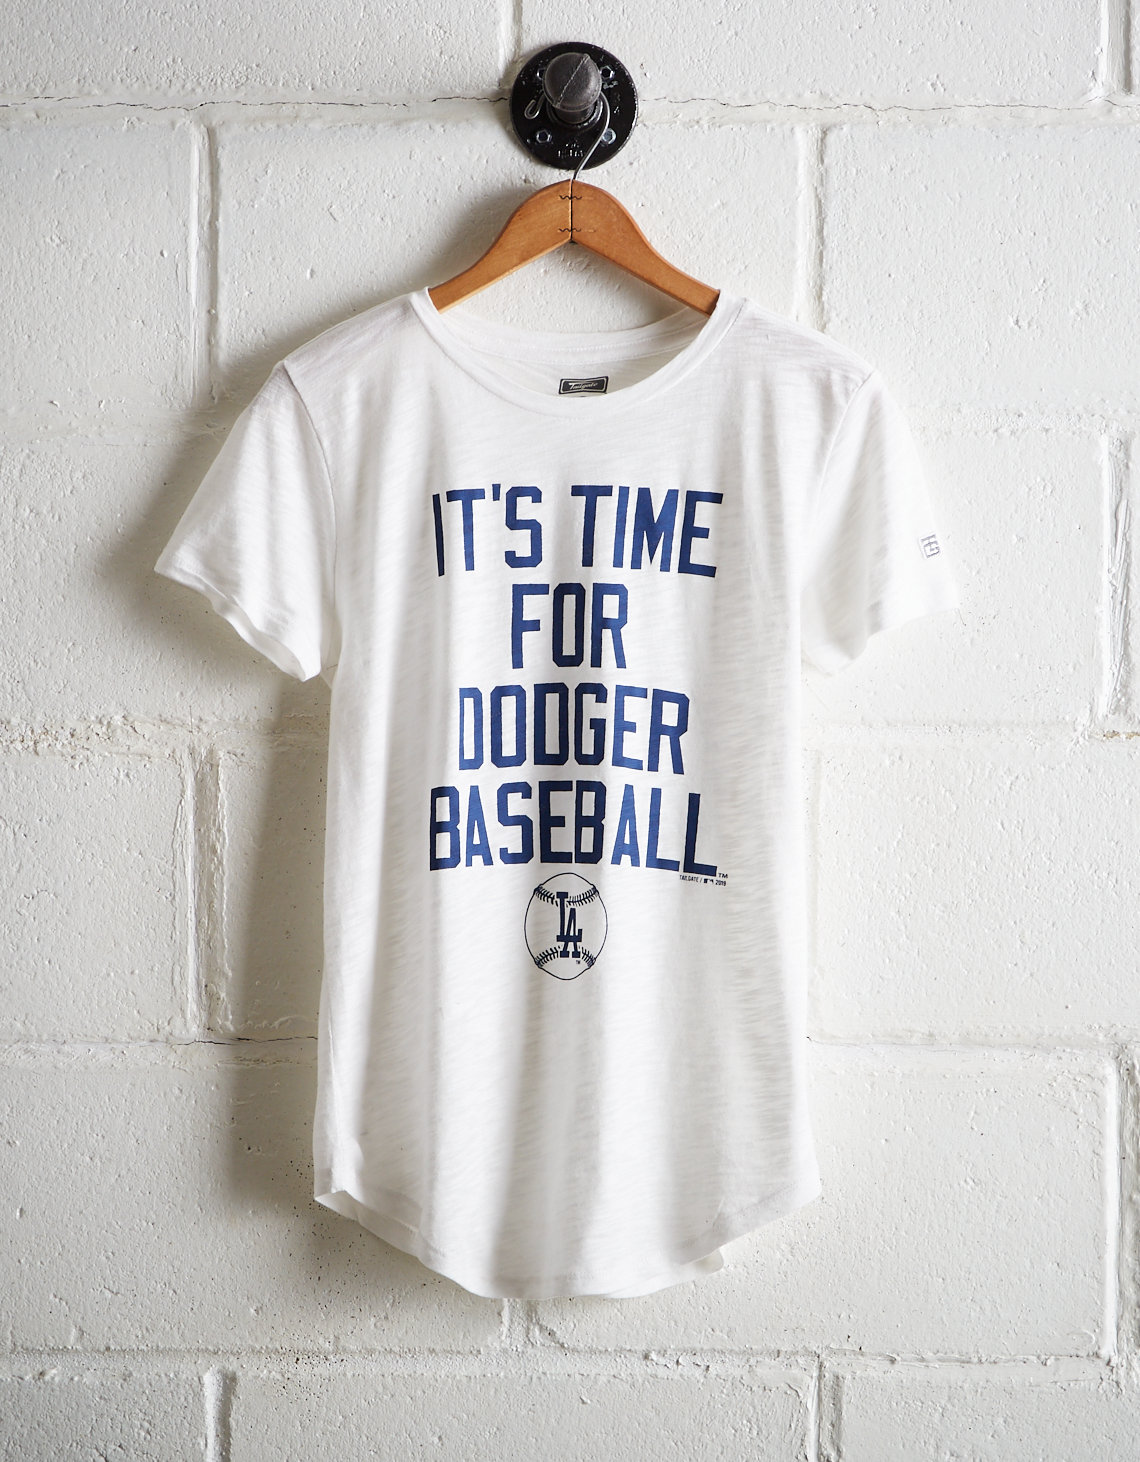 Womens Brooklyn Dodgers Shirt - Nils Stucki Kieferorthopäde